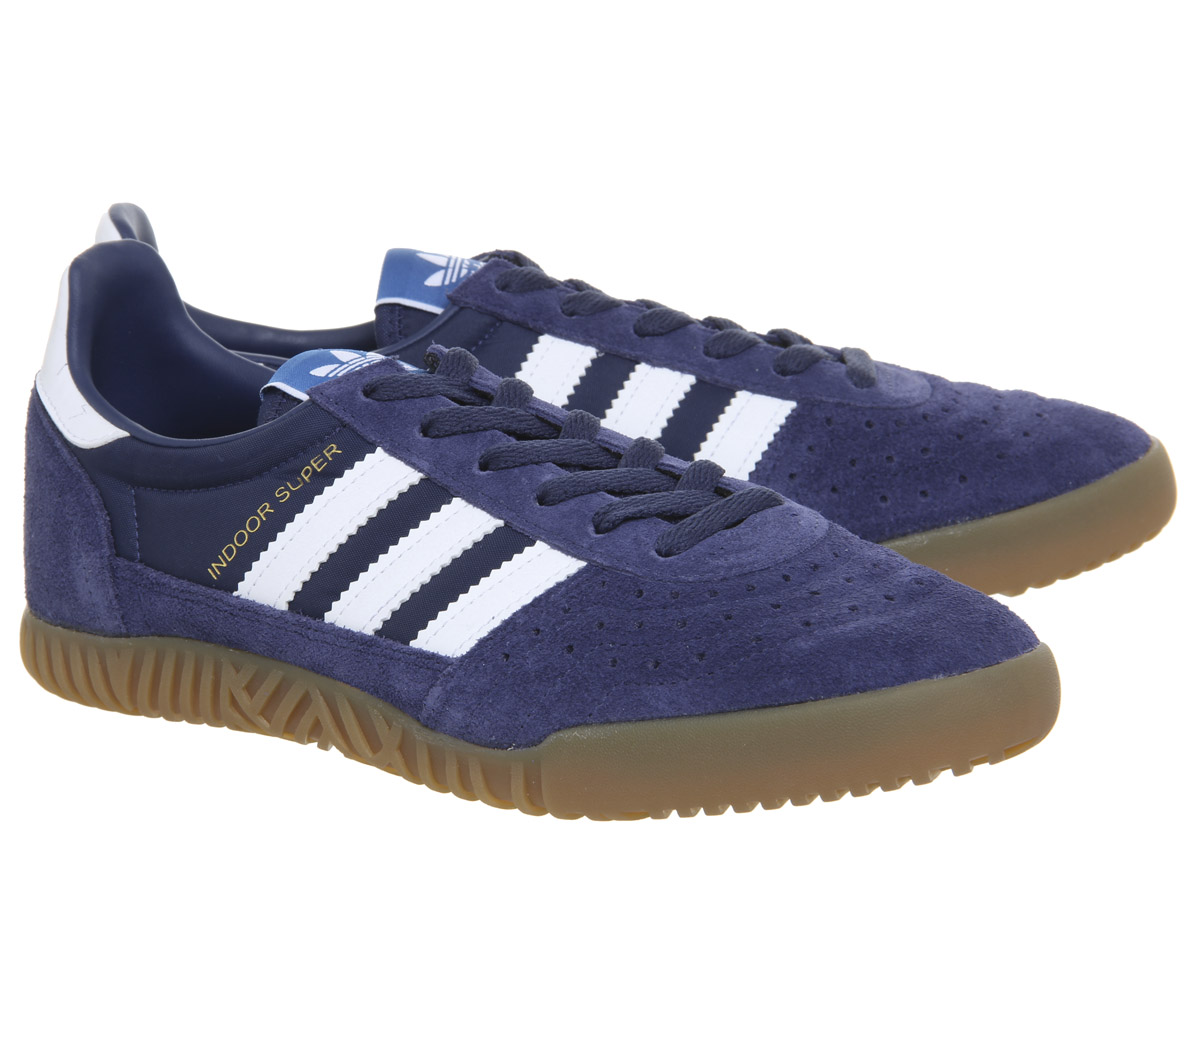 1ffb3c78b387 Sentinel Adidas Indoor Super Trainers Noble Indigo White Gum Trainers Shoes